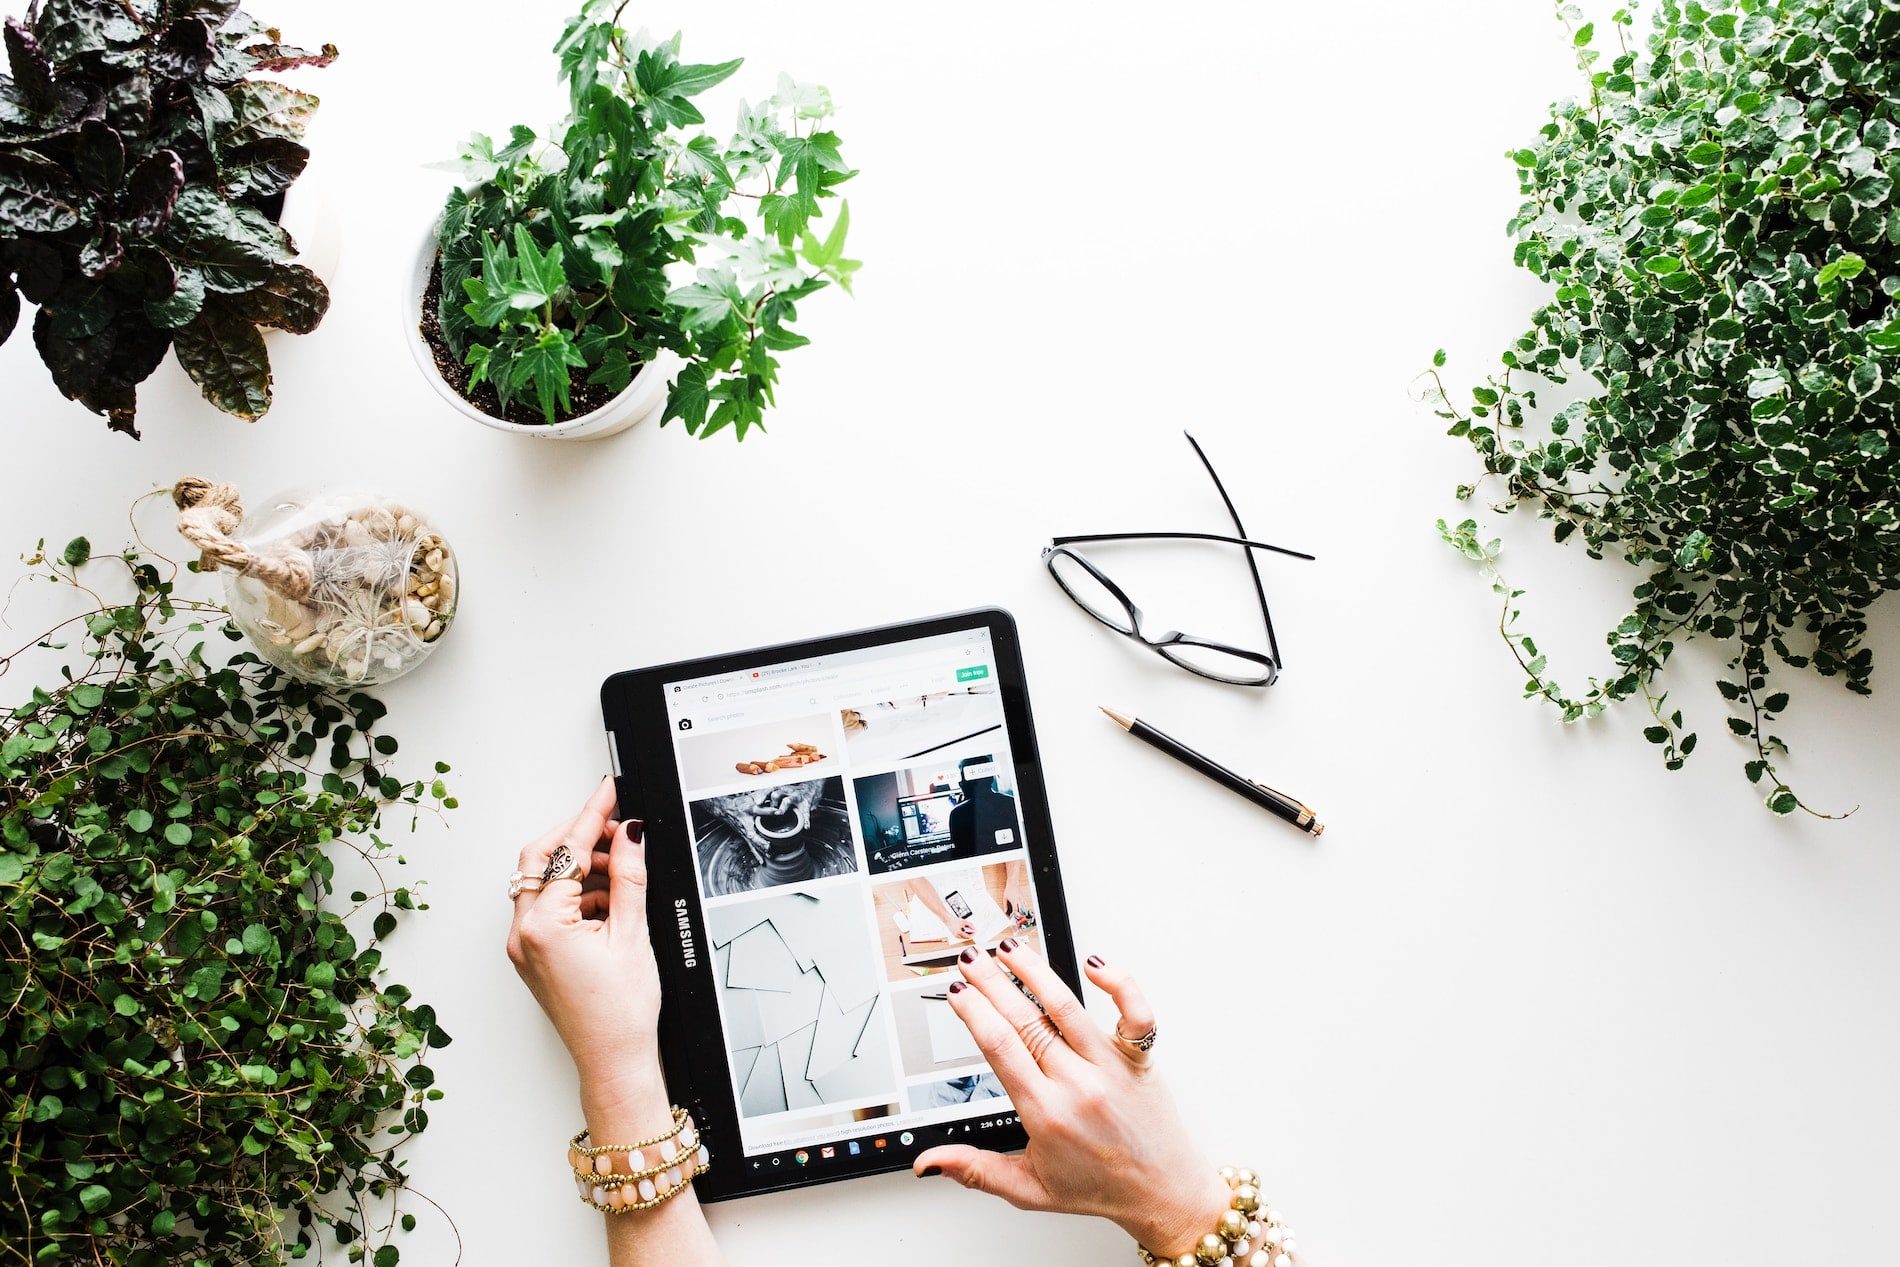 Person on ipad surrounded by plants